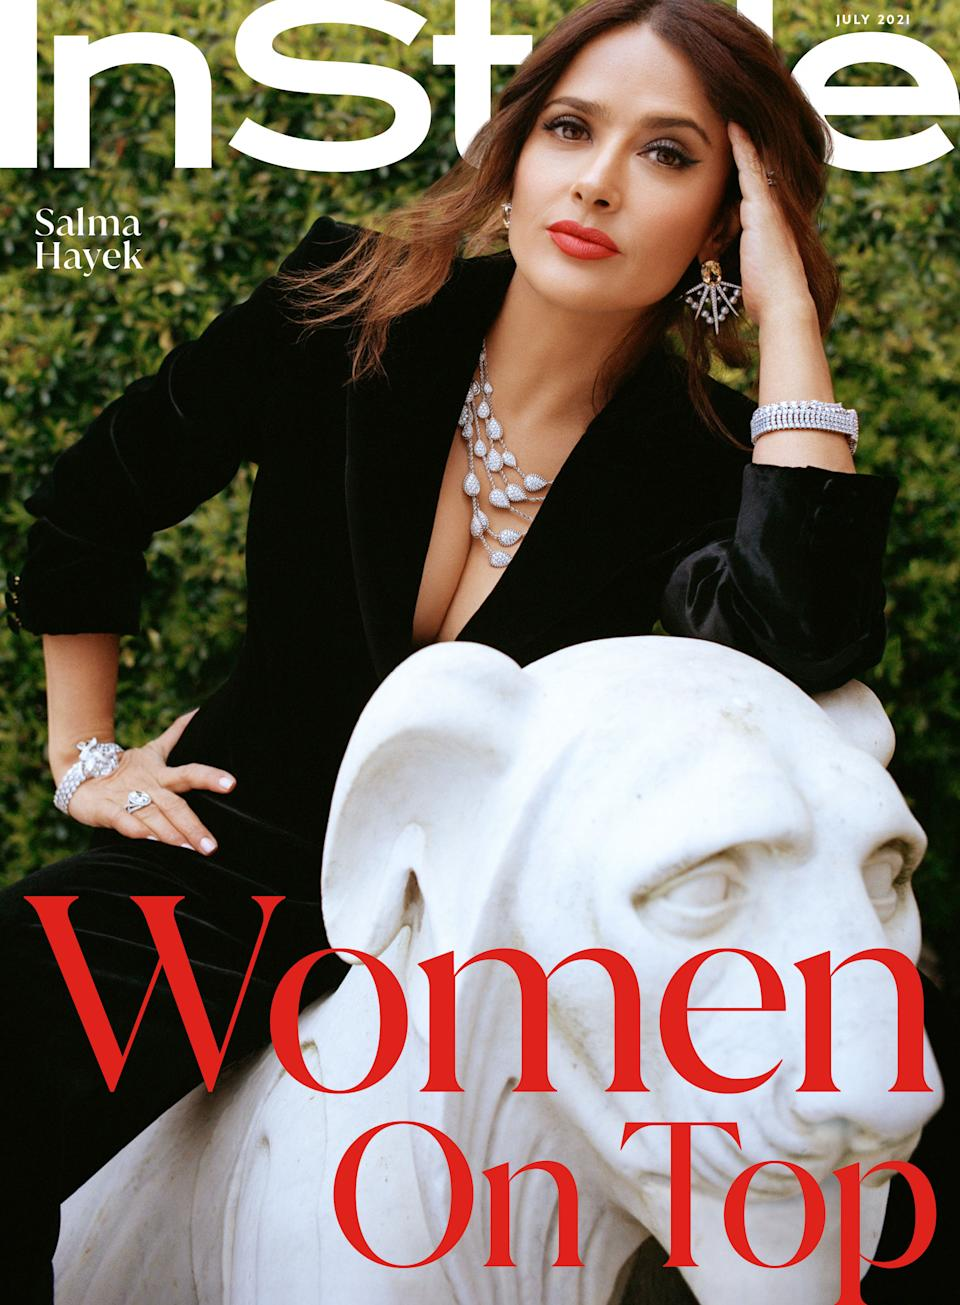 Salma Hayek appears on the latest cover of InStyle (on stands July 11) to discuss aging in Hollywood. (Photo: InStyle)